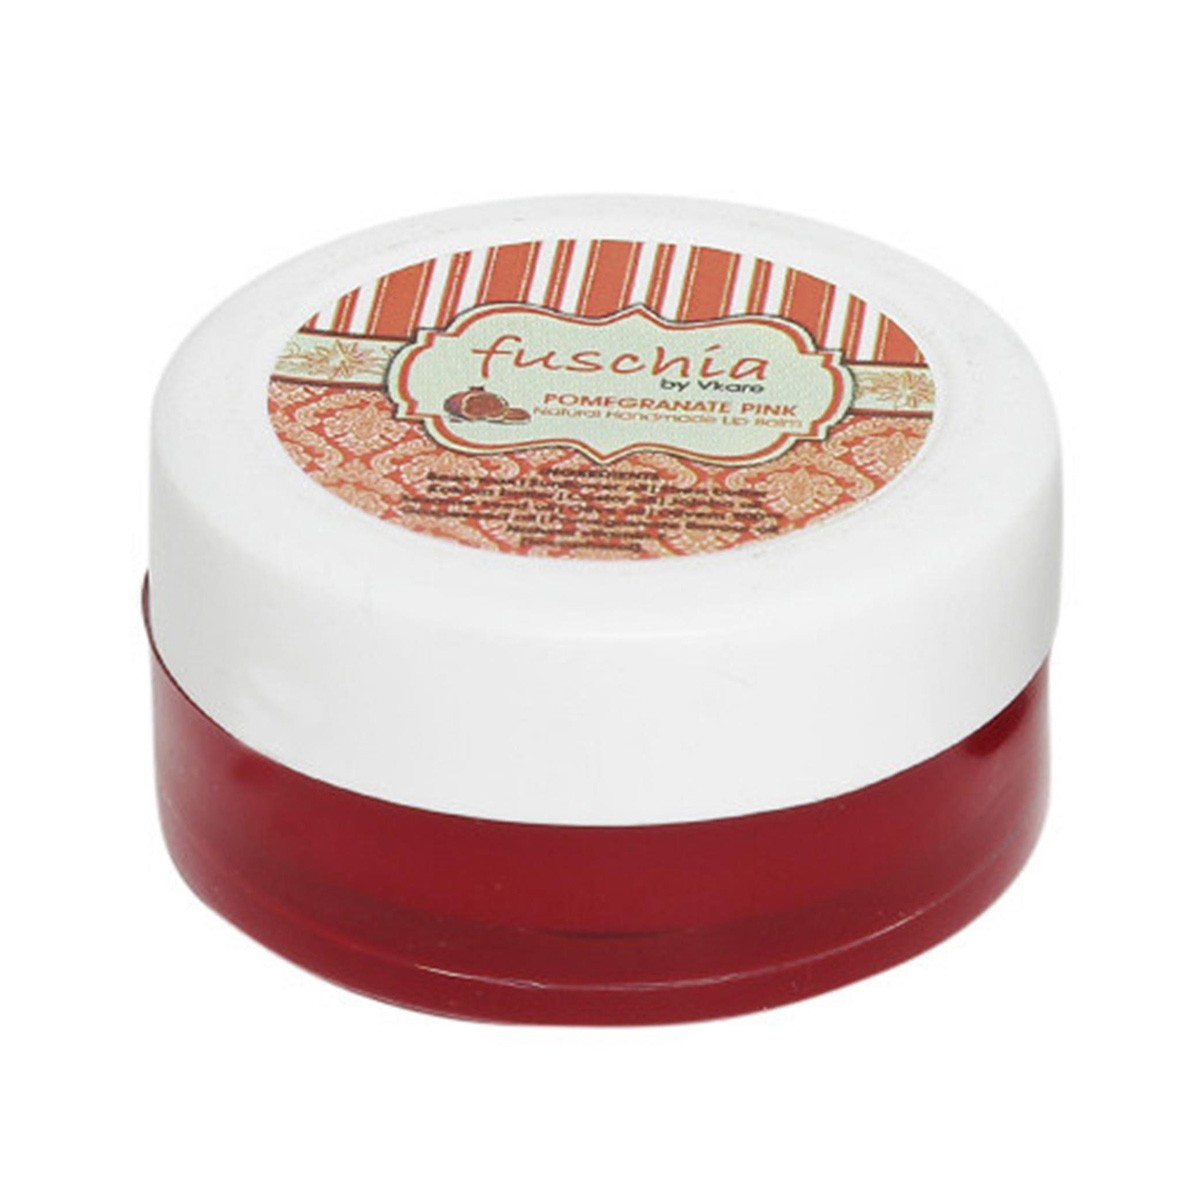 Pomegranate Pink Lip Balm